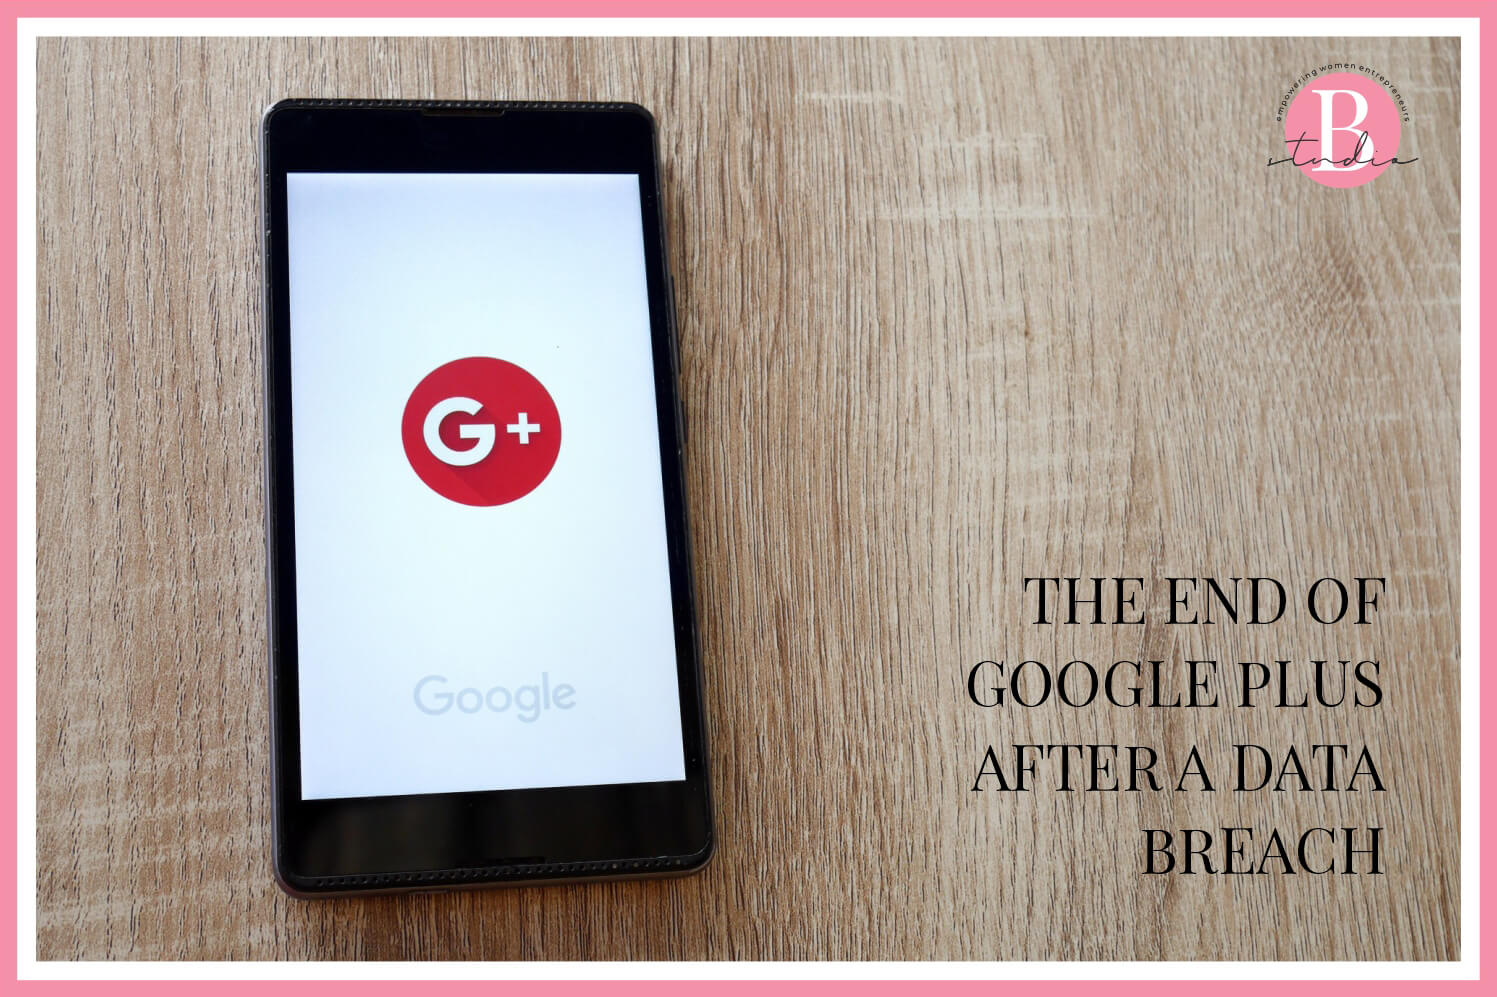 The End of Google Plus After a Data Breach img